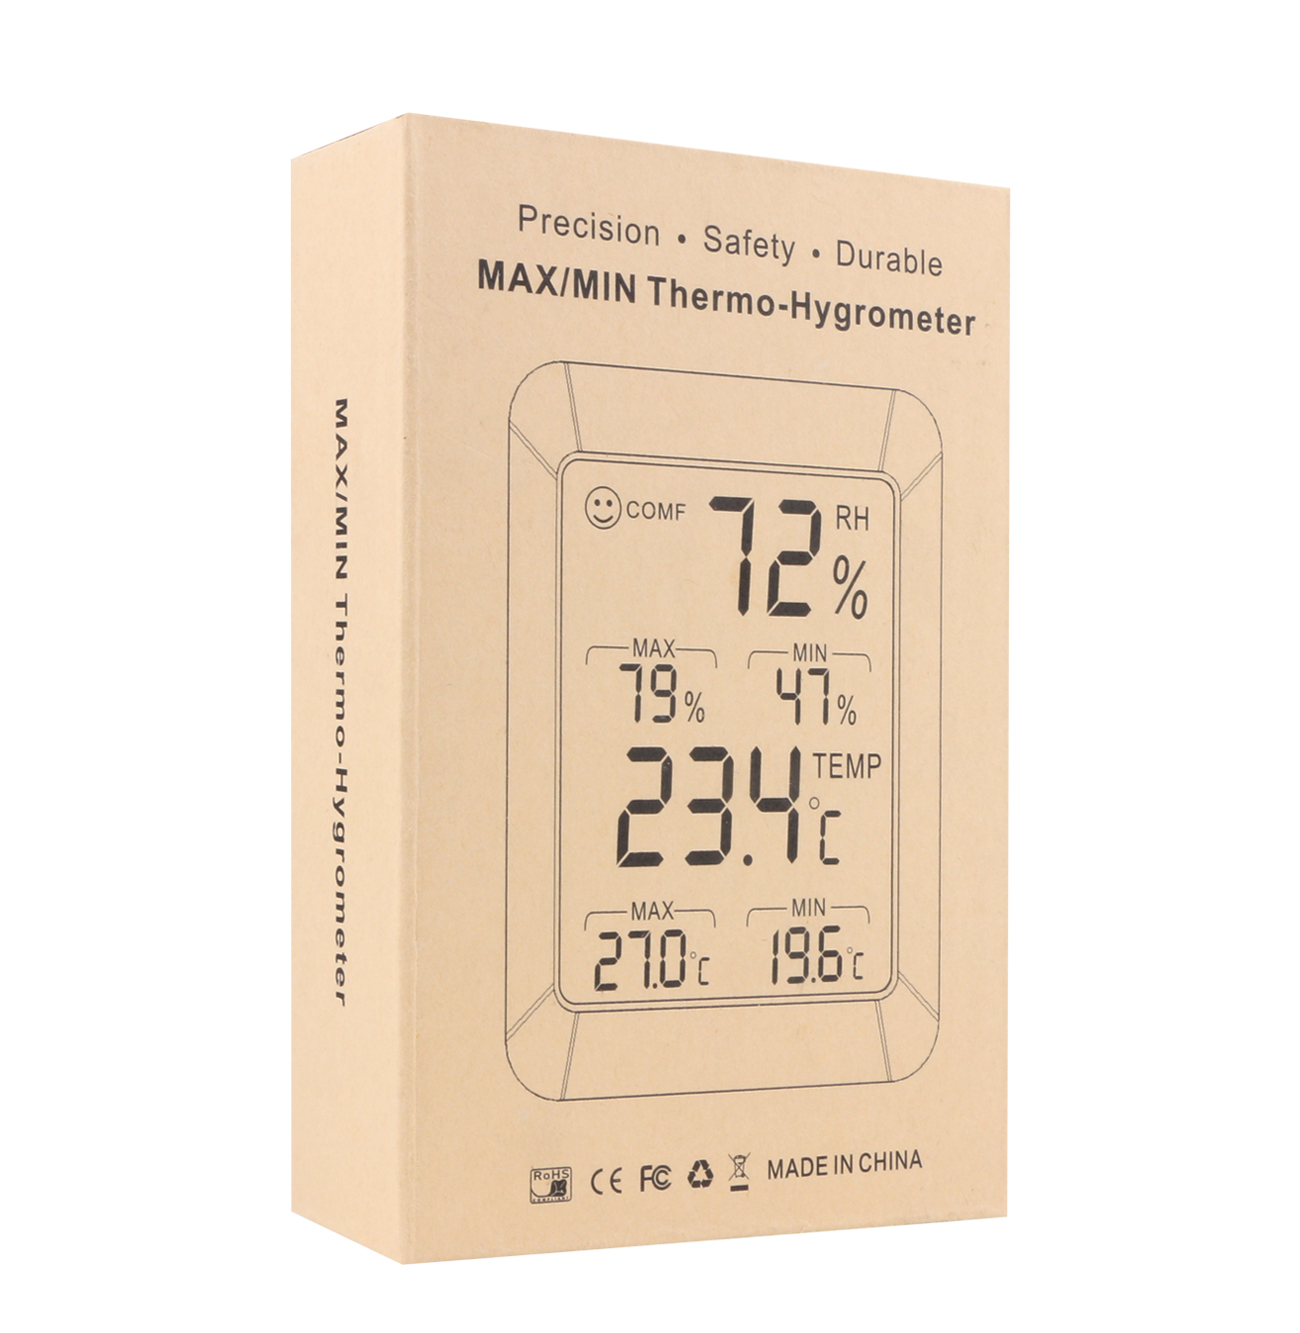 images/wholesale-electronics-2019/DX2-multi-function-room-thermometer-hygrometer-plusbuyer_4.jpg